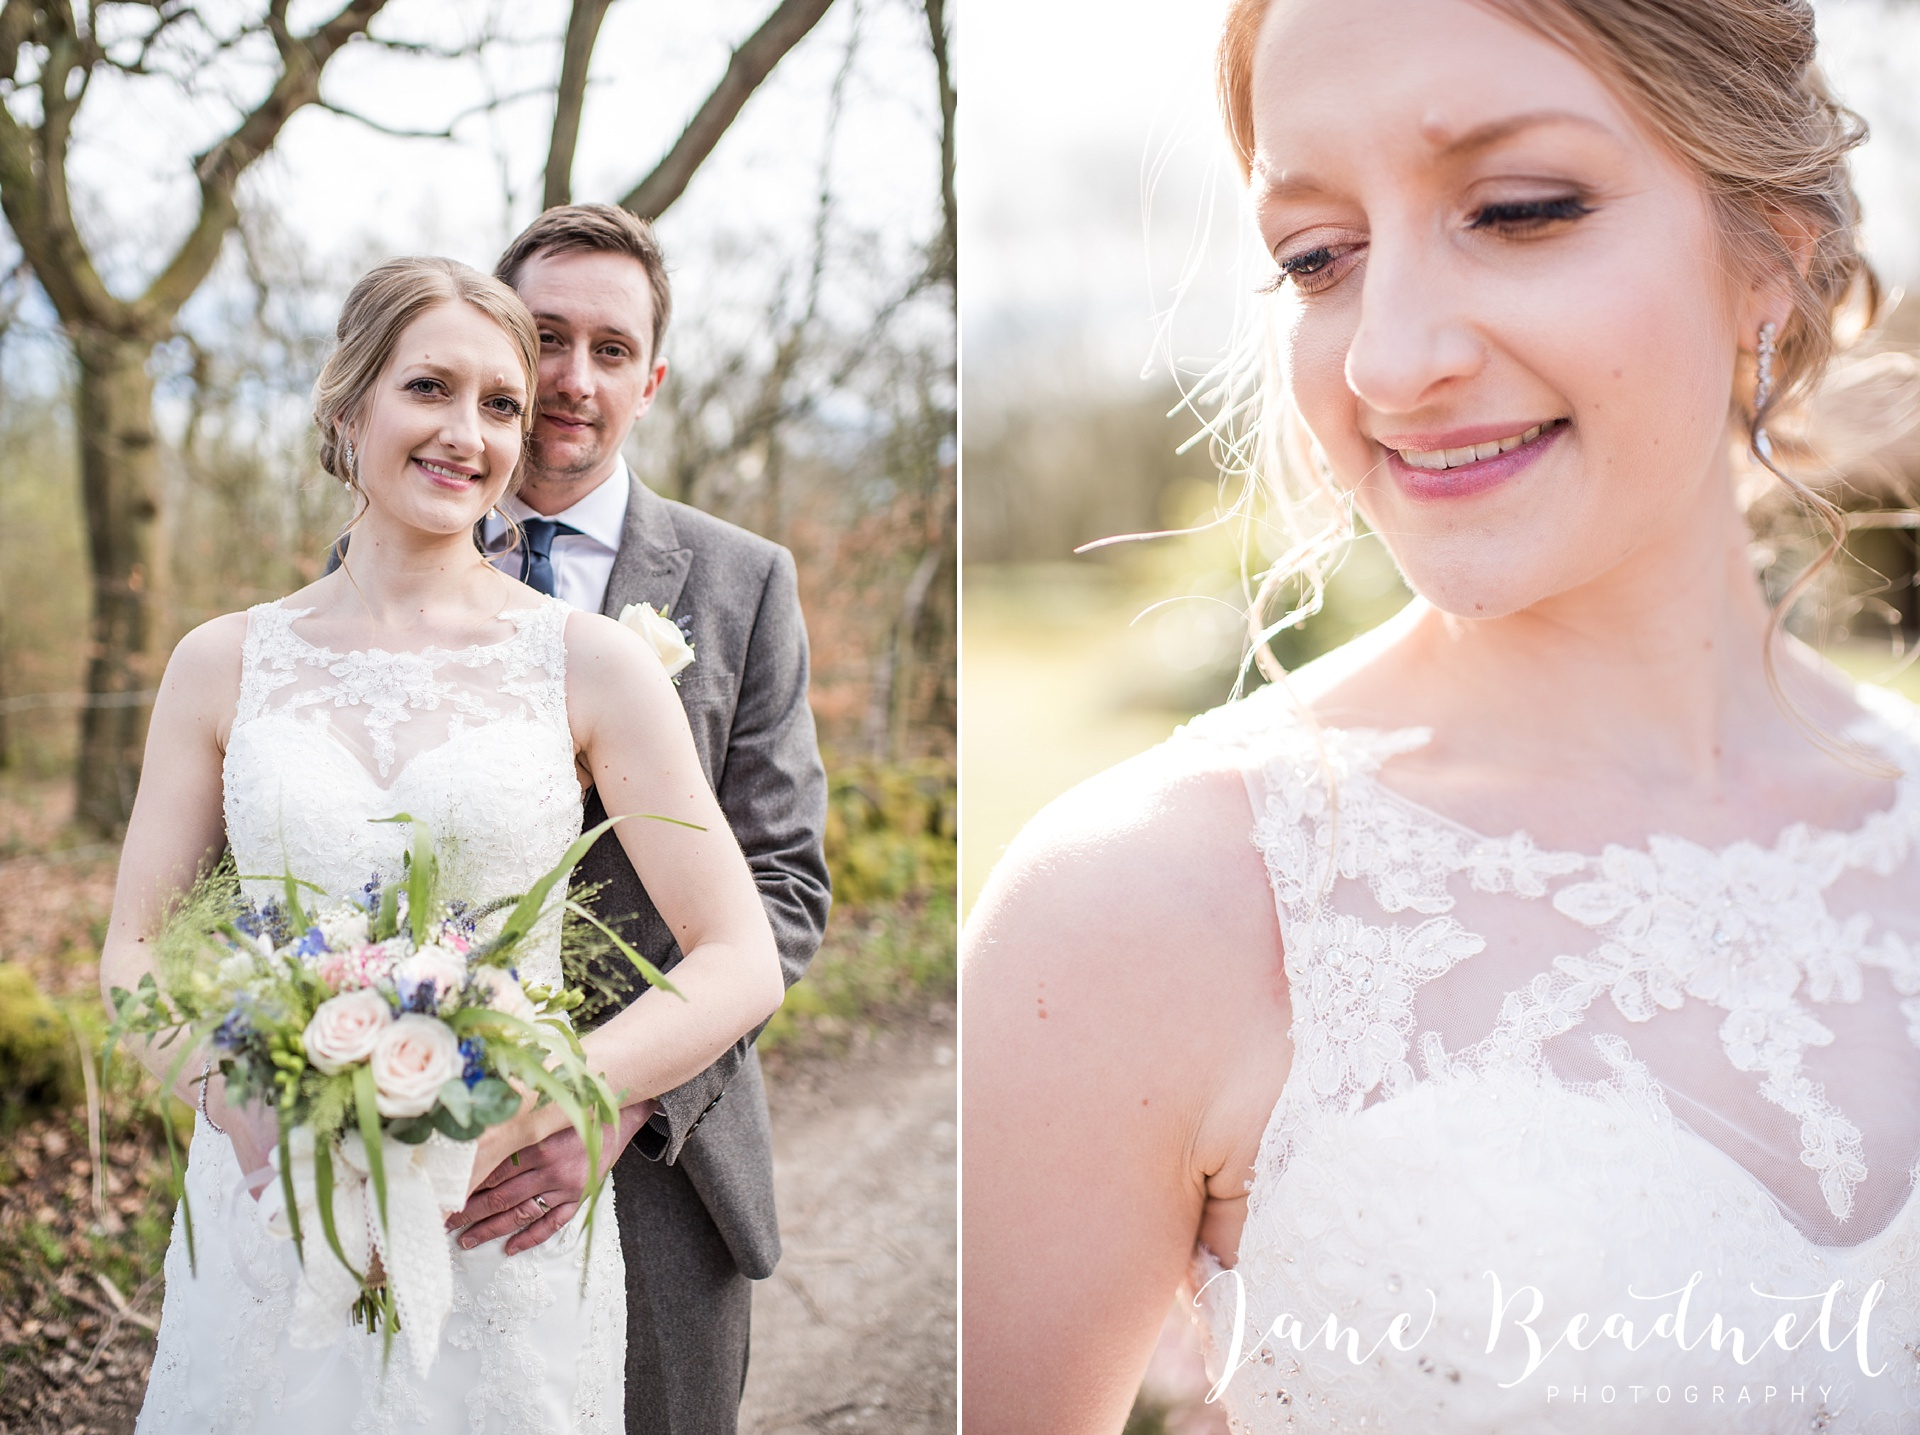 Otley Chevin Lodge wedding photography by Jane Beadnell Photography Leeds_0119